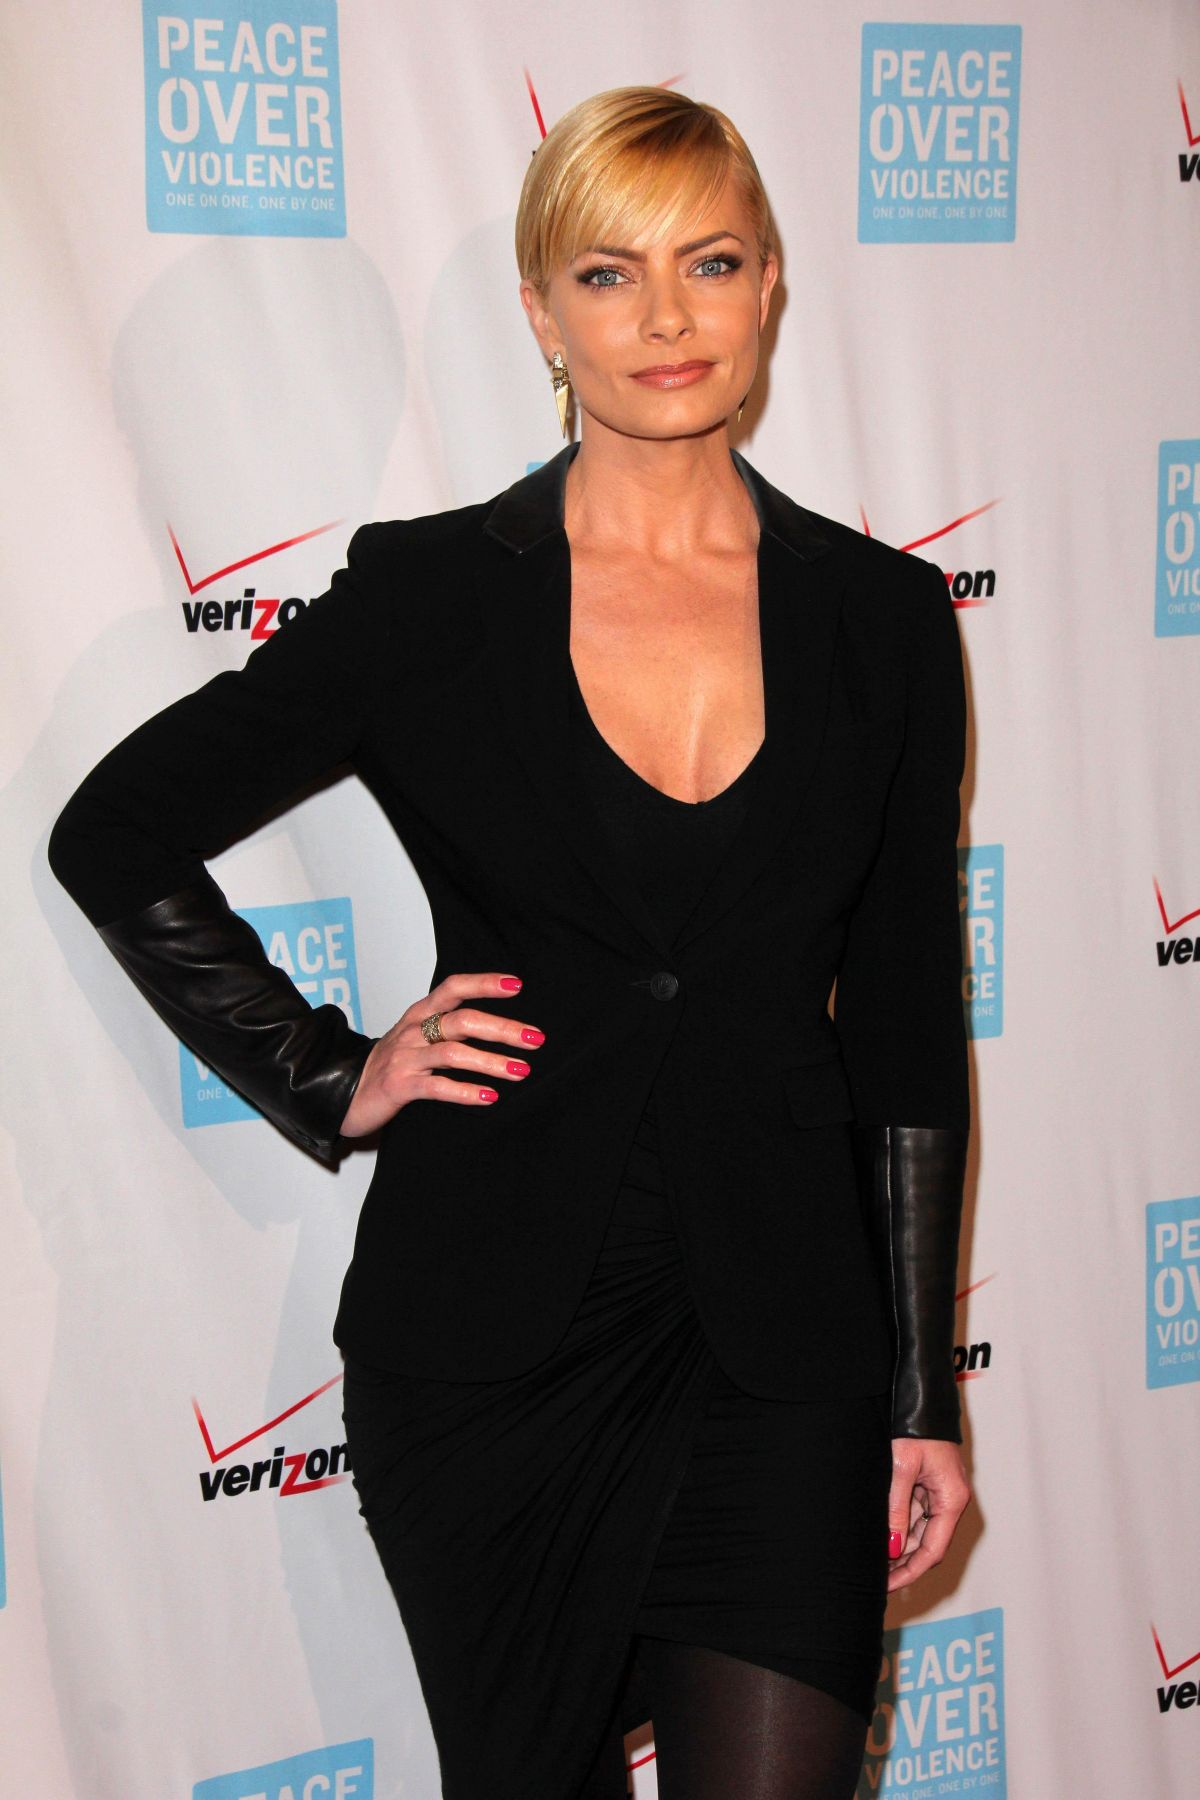 JAIME PRESSLY at 44th Annual Peace Over Violence Humanitarian Awards in Los Angeles 10/16/2015